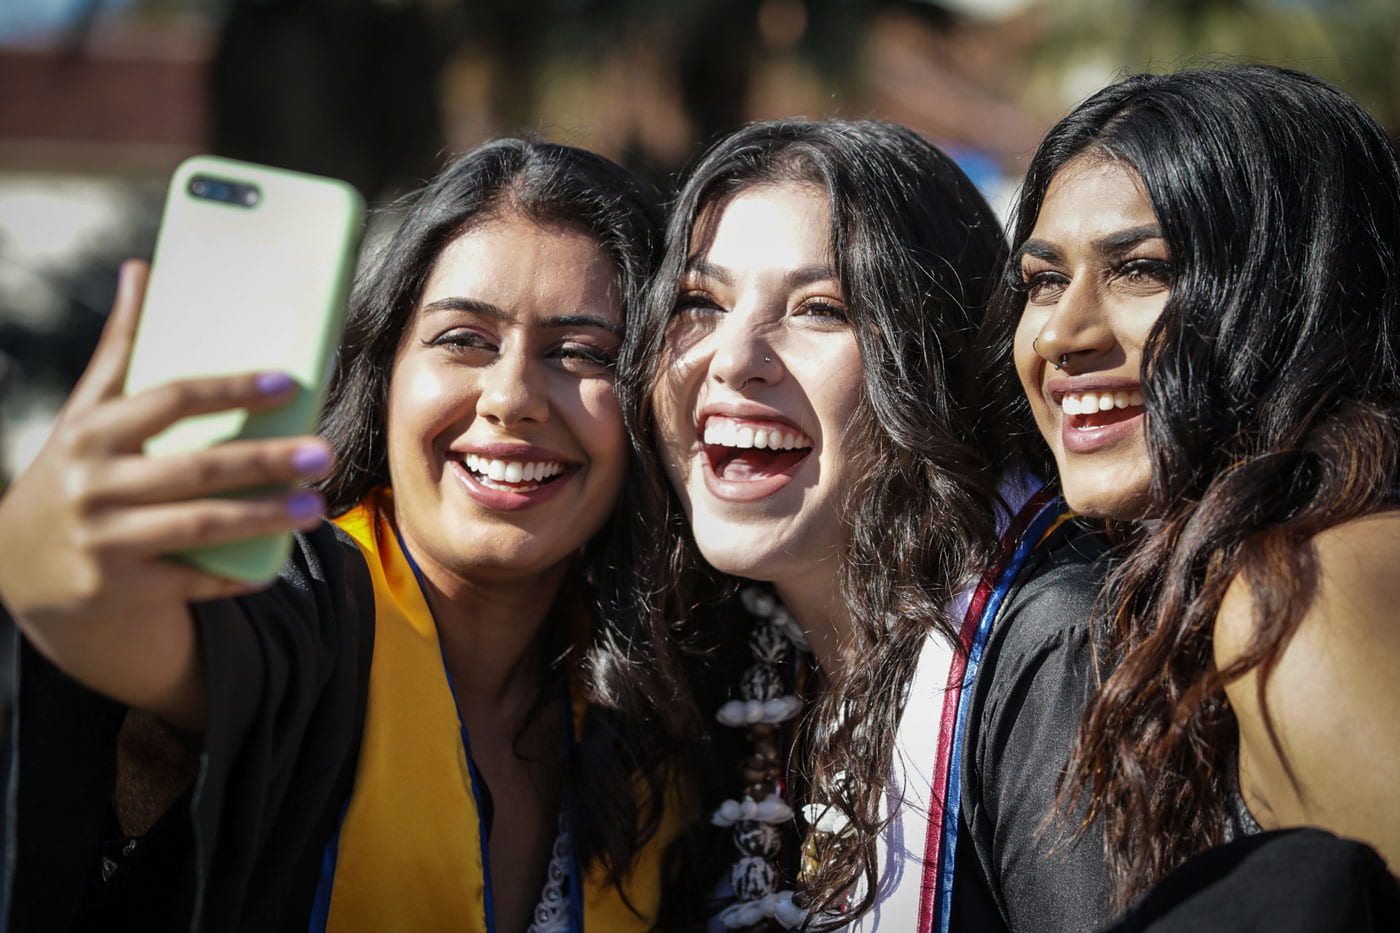 SJSU graduates smile while taking a selfie.